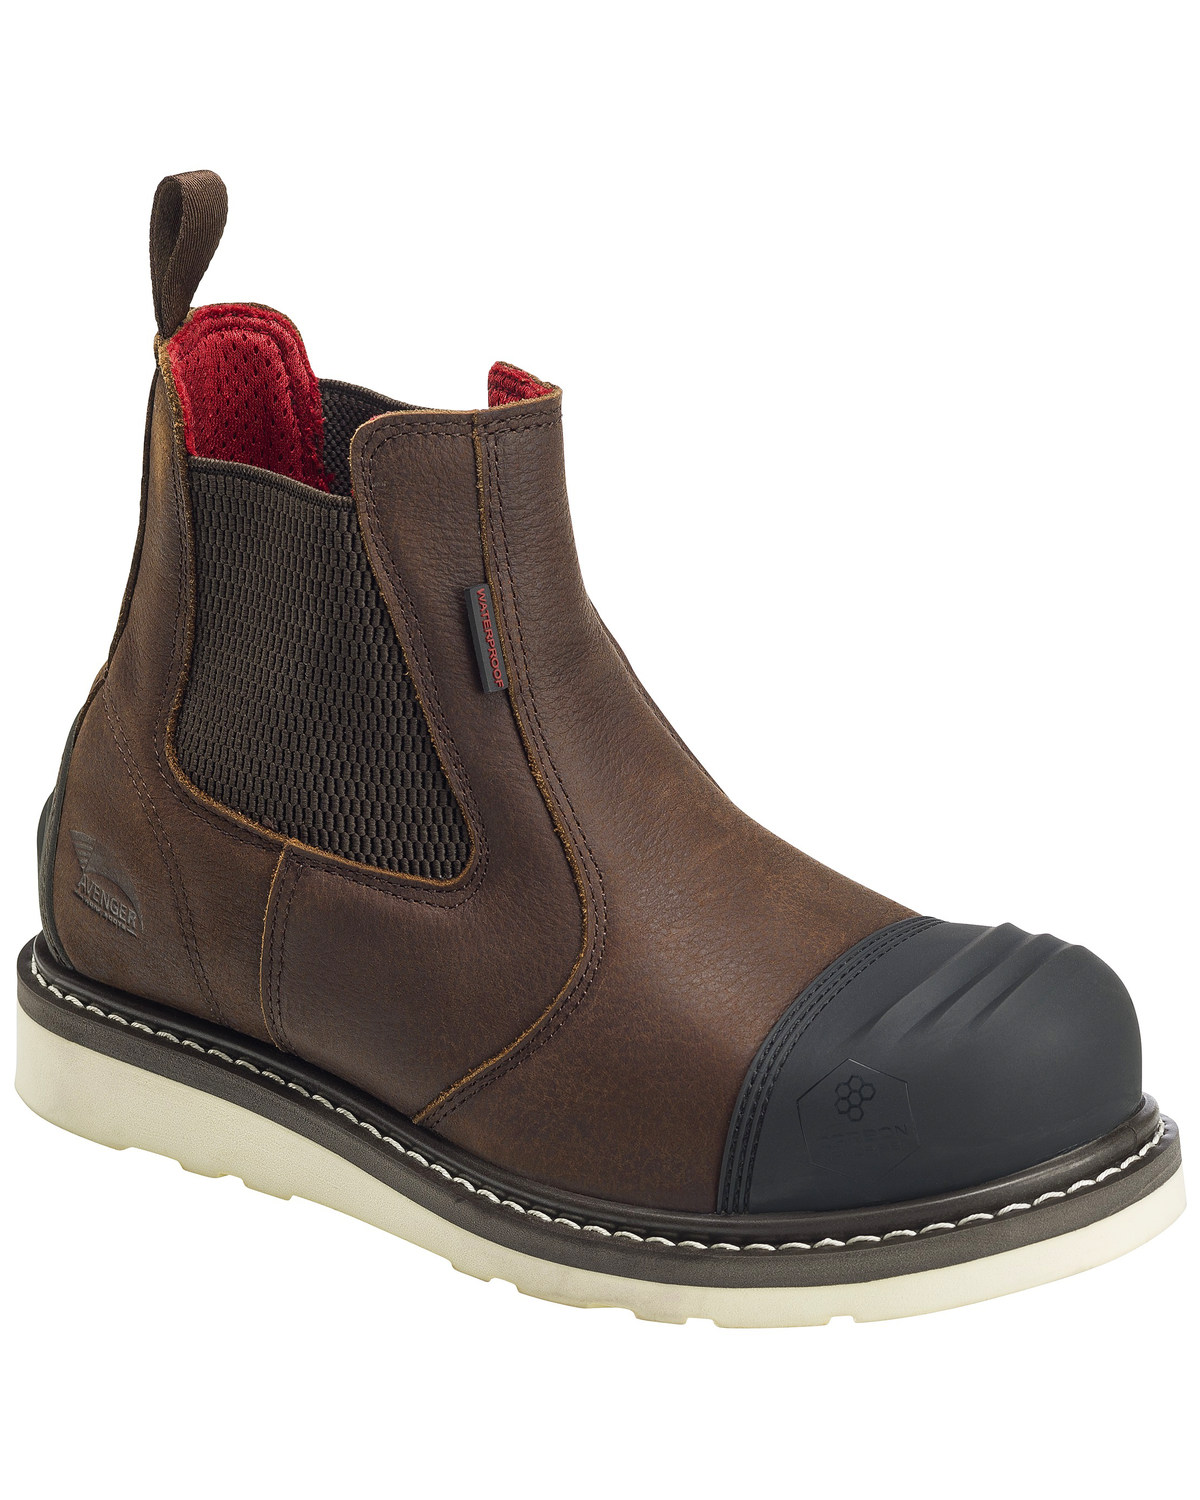 mens work boots near me